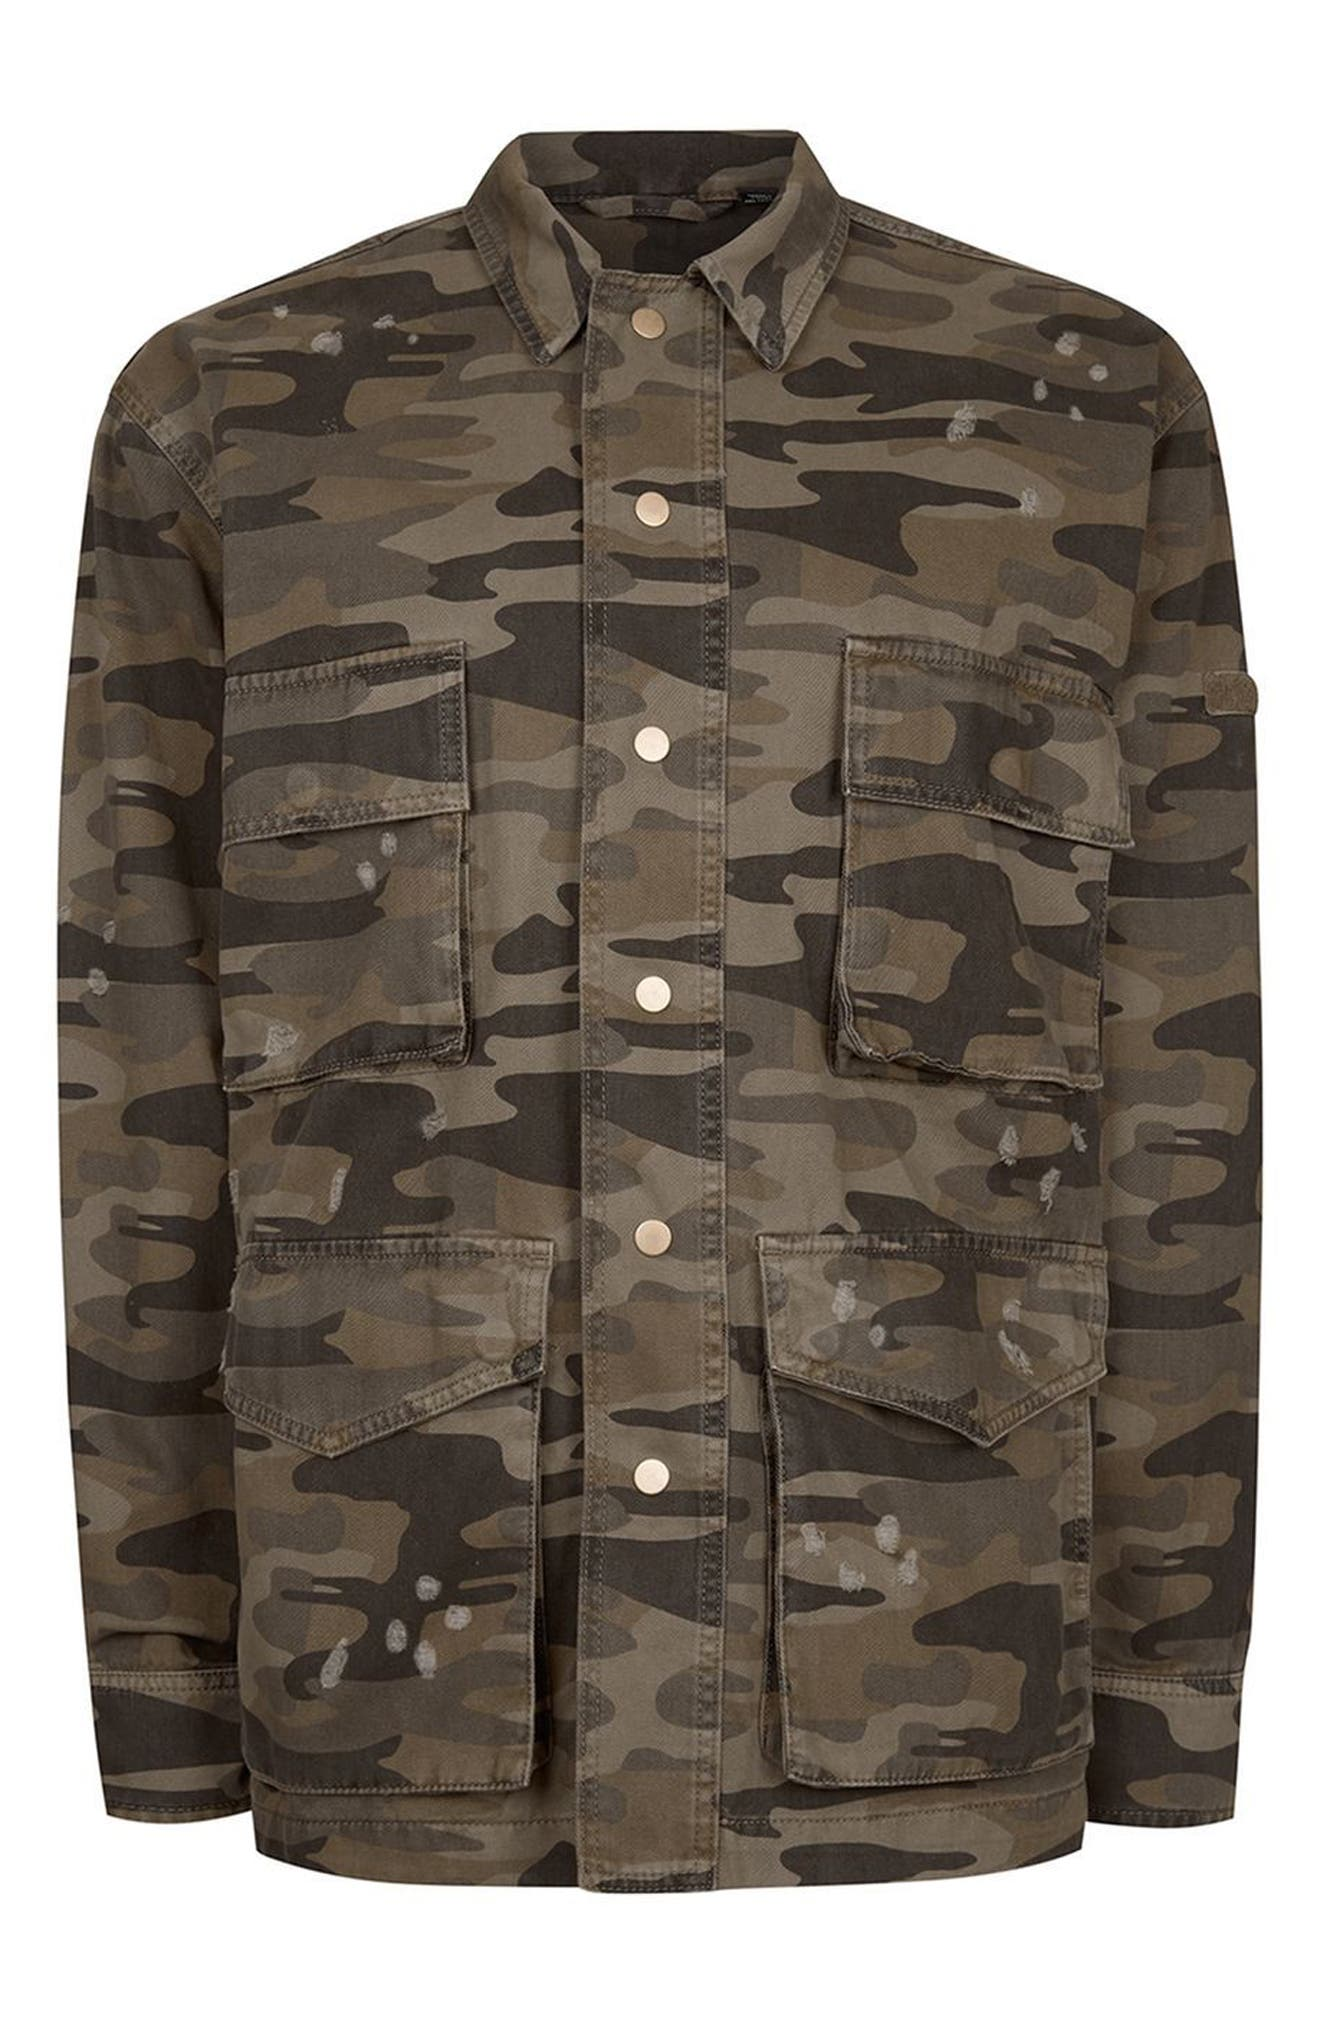 AAA Collection Distressed Camo Field Jacket,                             Alternate thumbnail 4, color,                             300